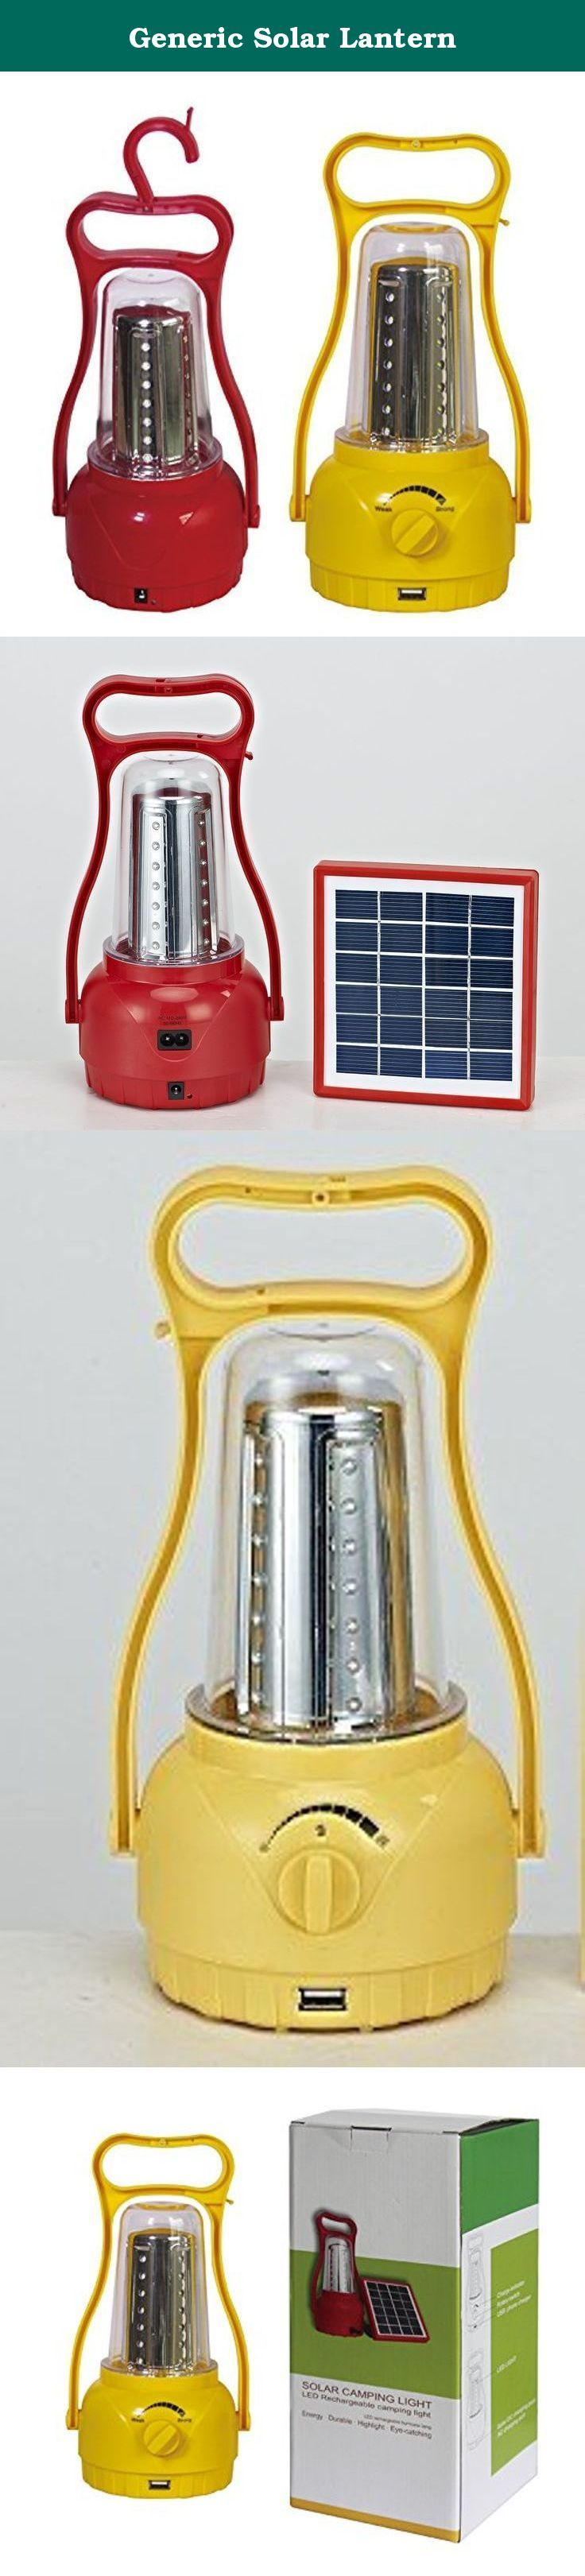 Generic Solar Lantern. 1.Solar panels: 6V/1.5W 2.LED power: 35pcs lamp beads 3.Battery: 4V / 3000MA 4.Material: Plastic ABS / transparent PC 5.AC charging port, cell phone charging 6.free to adjust brightness; can be inverted upside down.